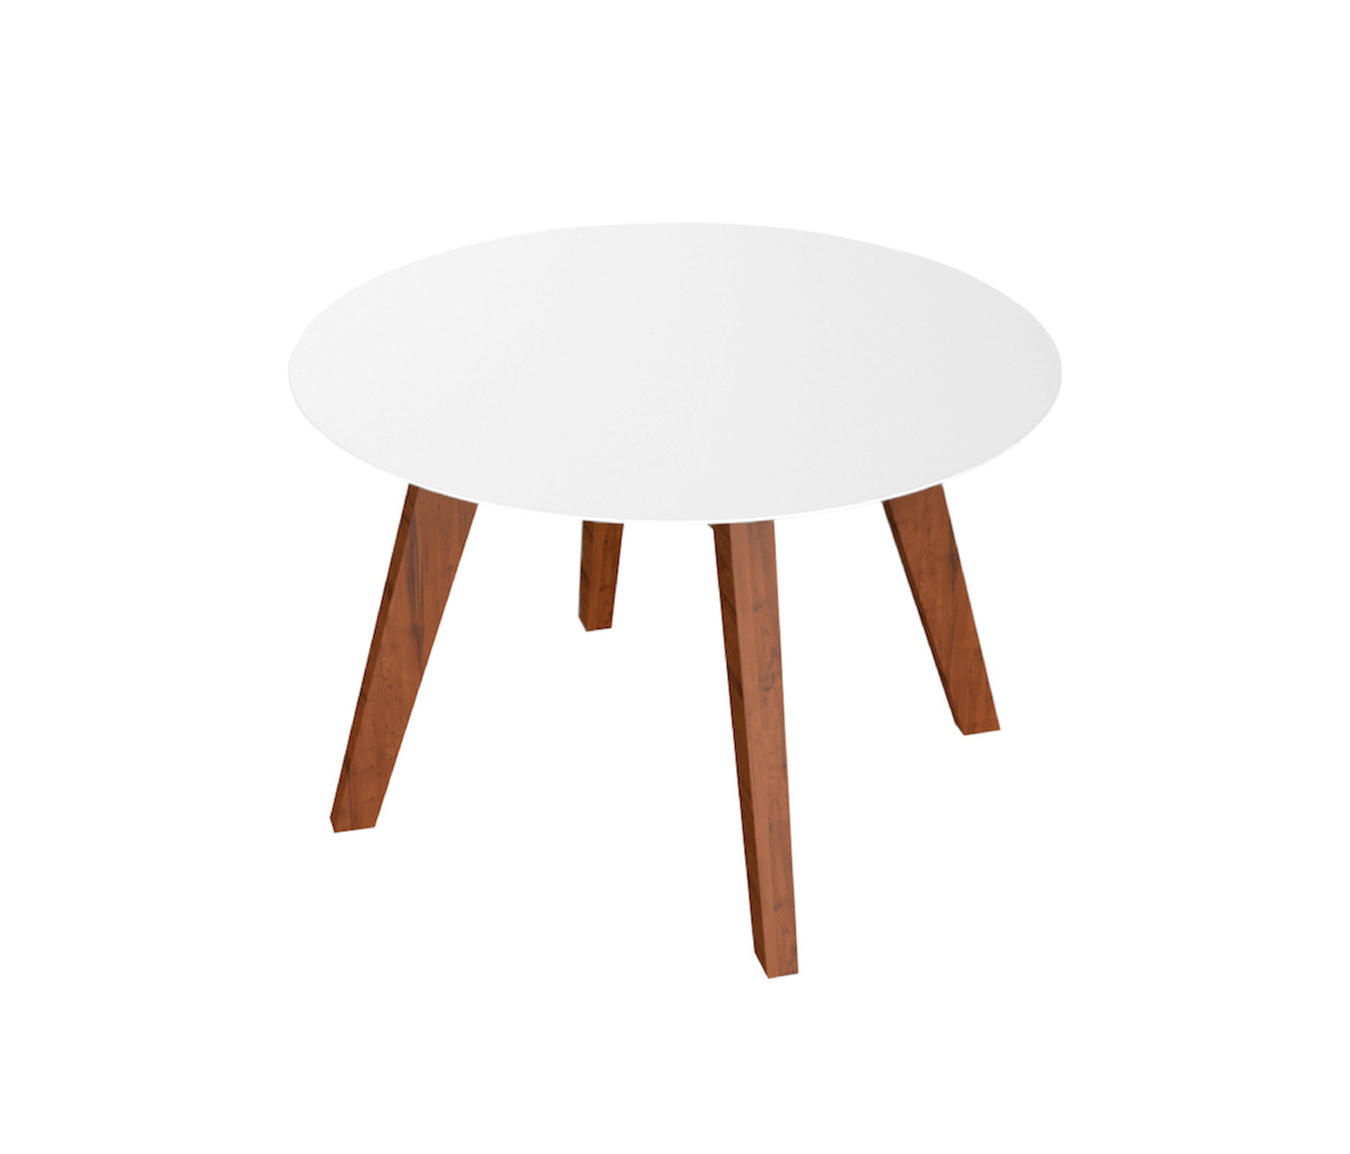 Slim Wood Collection Lounge Lounge Table Wood 64 Coffee Tables From Viteo Architonic